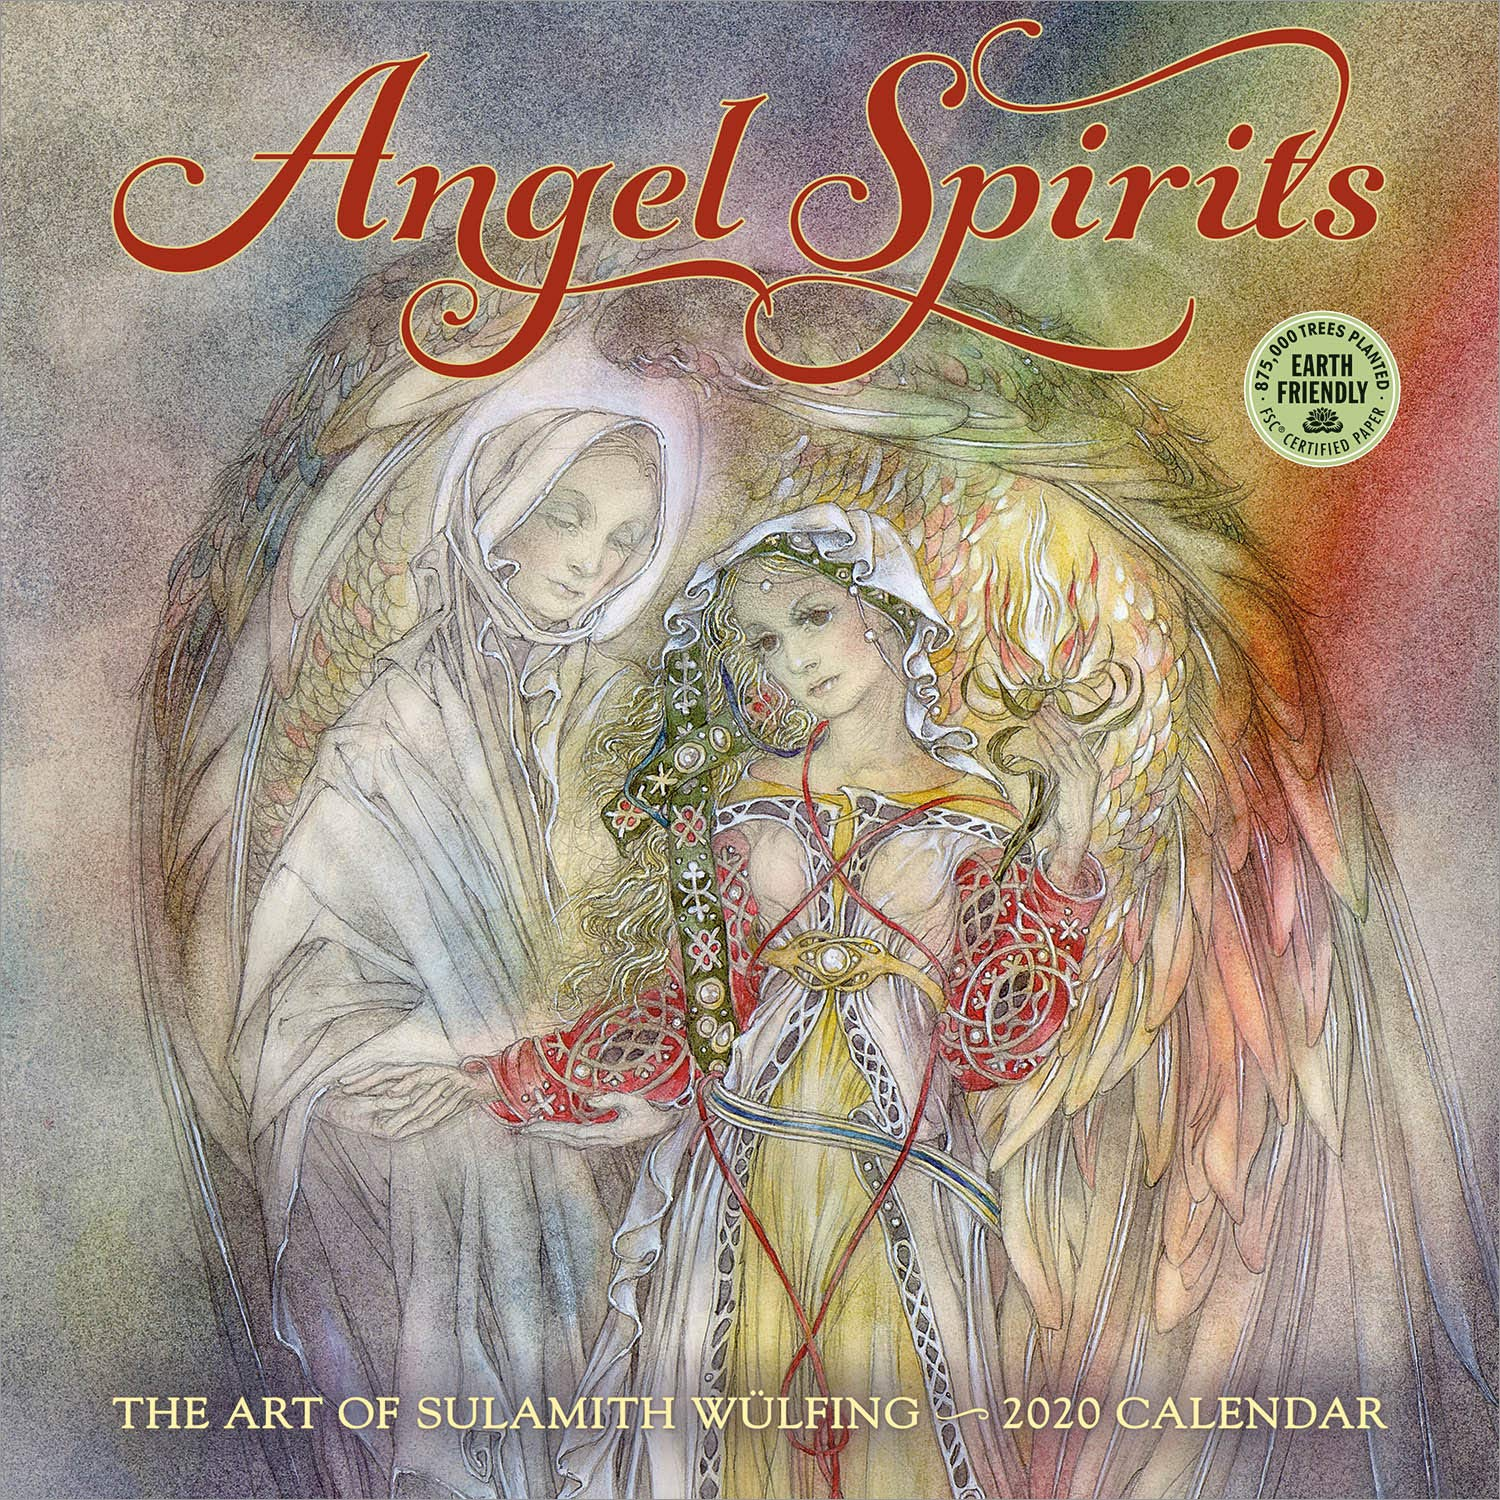 Angel Spirits 2020 Wall Calendar: The Art of Sulamith Wulfing